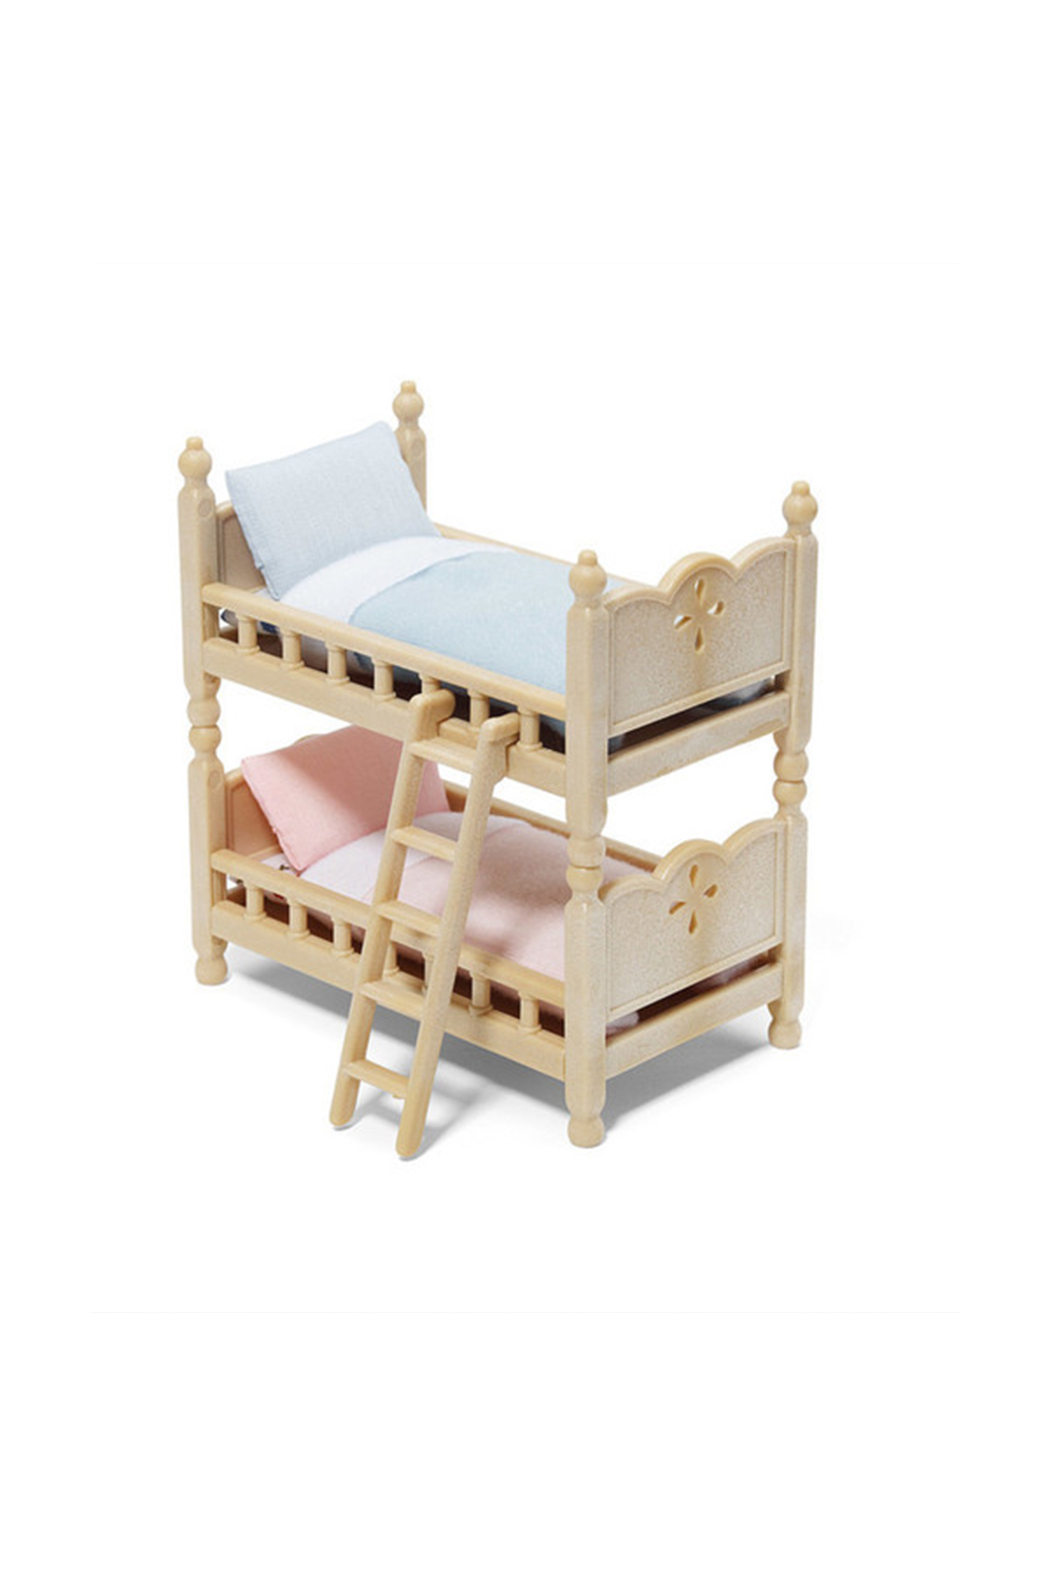 Calico Critters Stack And Play Bunk Beds - Back Cropped Image